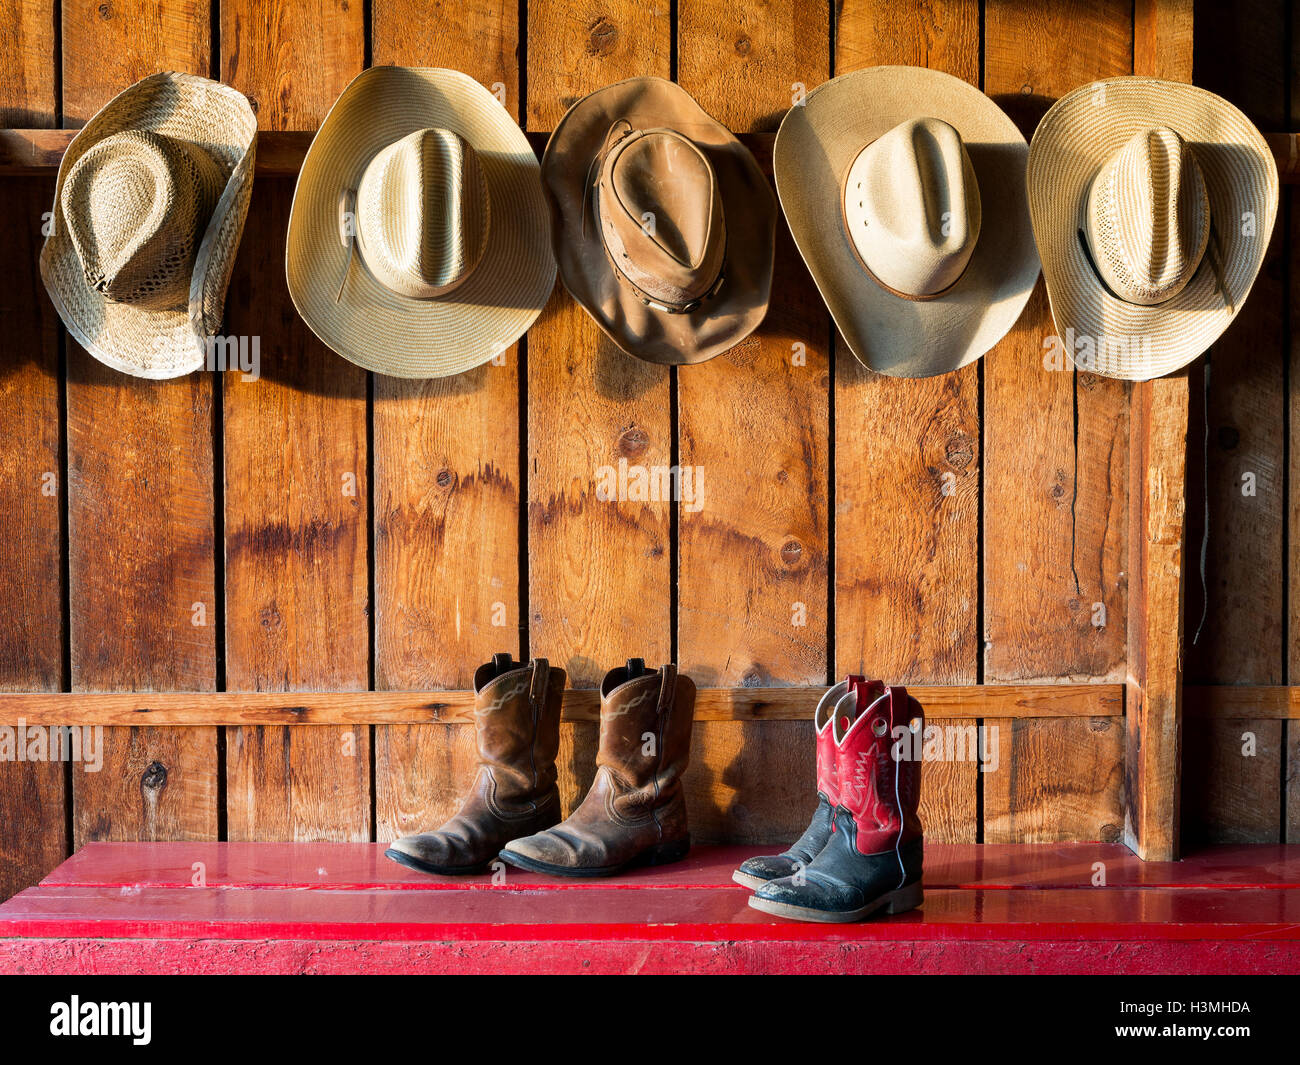 WY01072-00...WYOMING - Hat and boot room at the CM Ranch near Dubois. - Stock Image